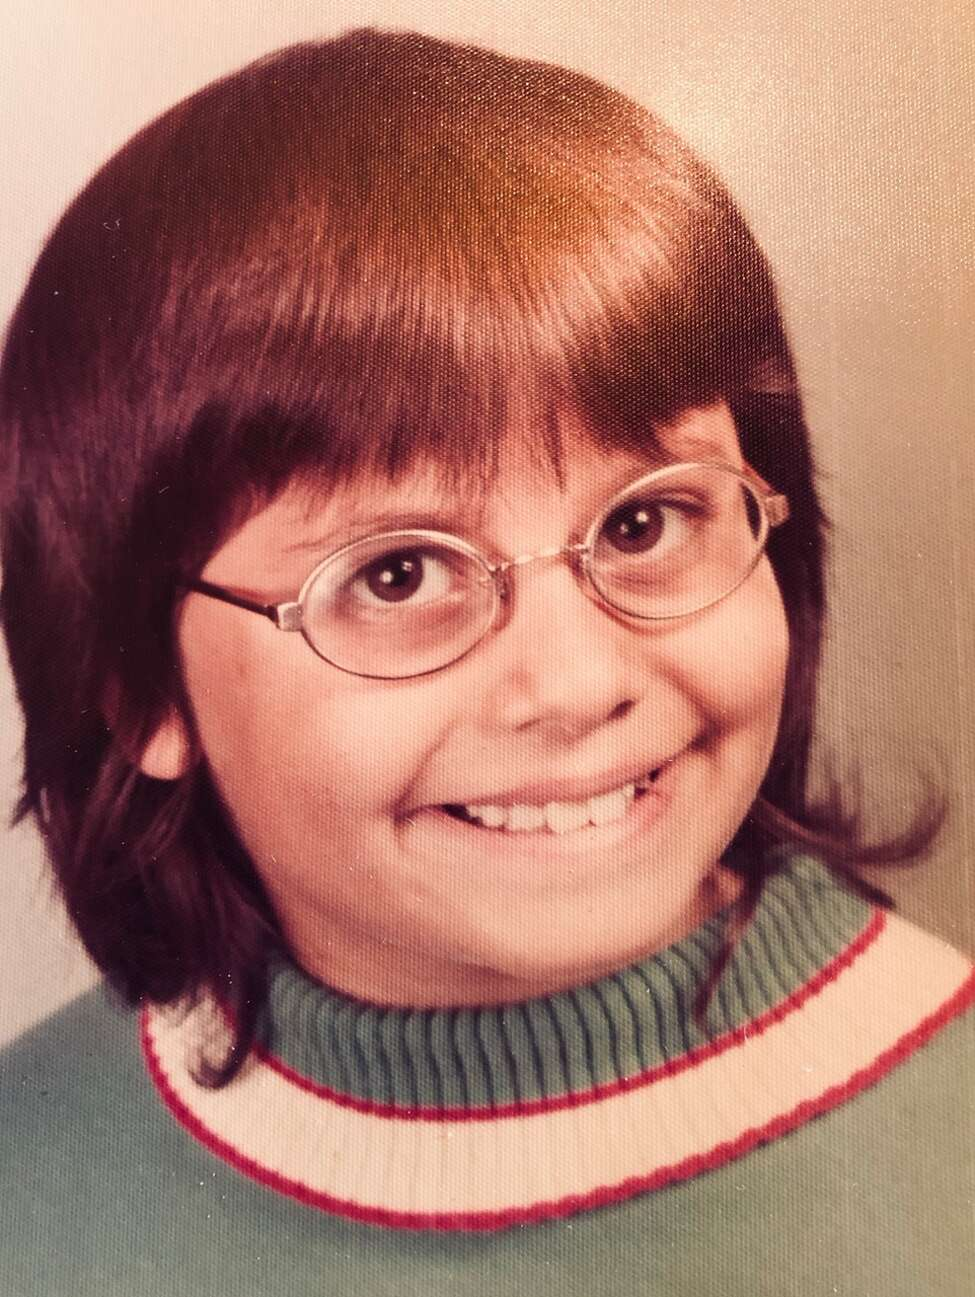 1. In third grade I attended Ben Franklin Elementary School where I honored the great man by wearing his spectacles.